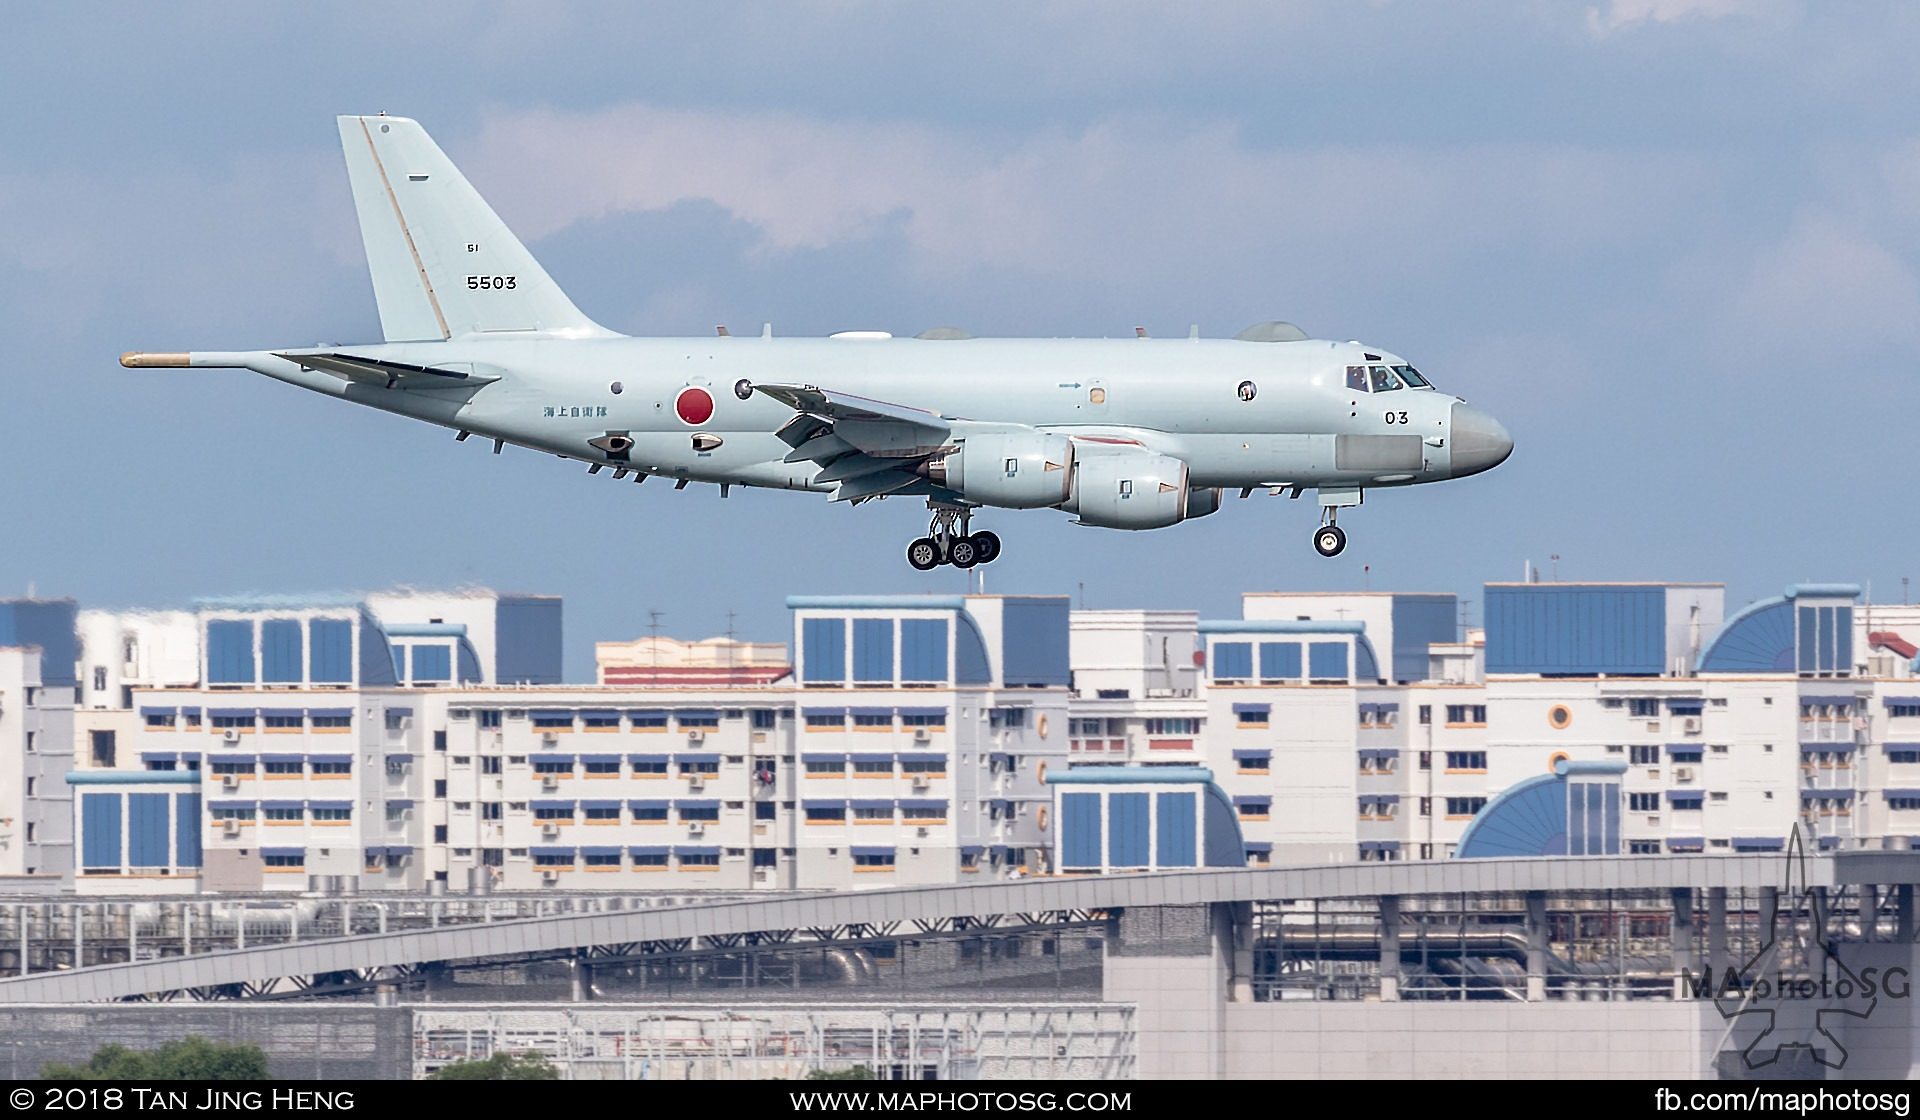 JMSDF Kawasaki P-1 (5503) landing at Paya Lebar Air Base